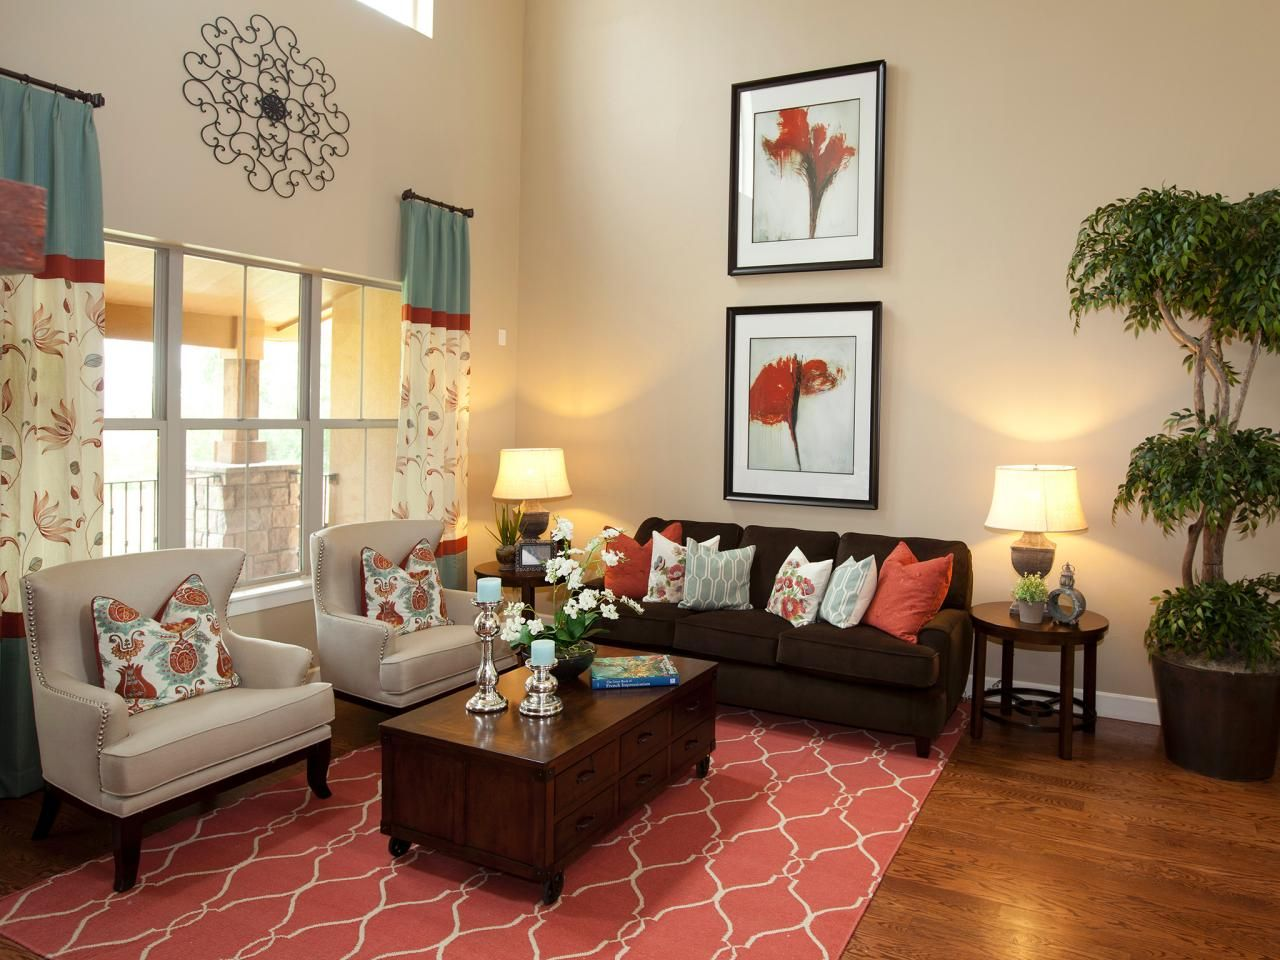 A Coral Colored Rug Pulls Together The Design In This